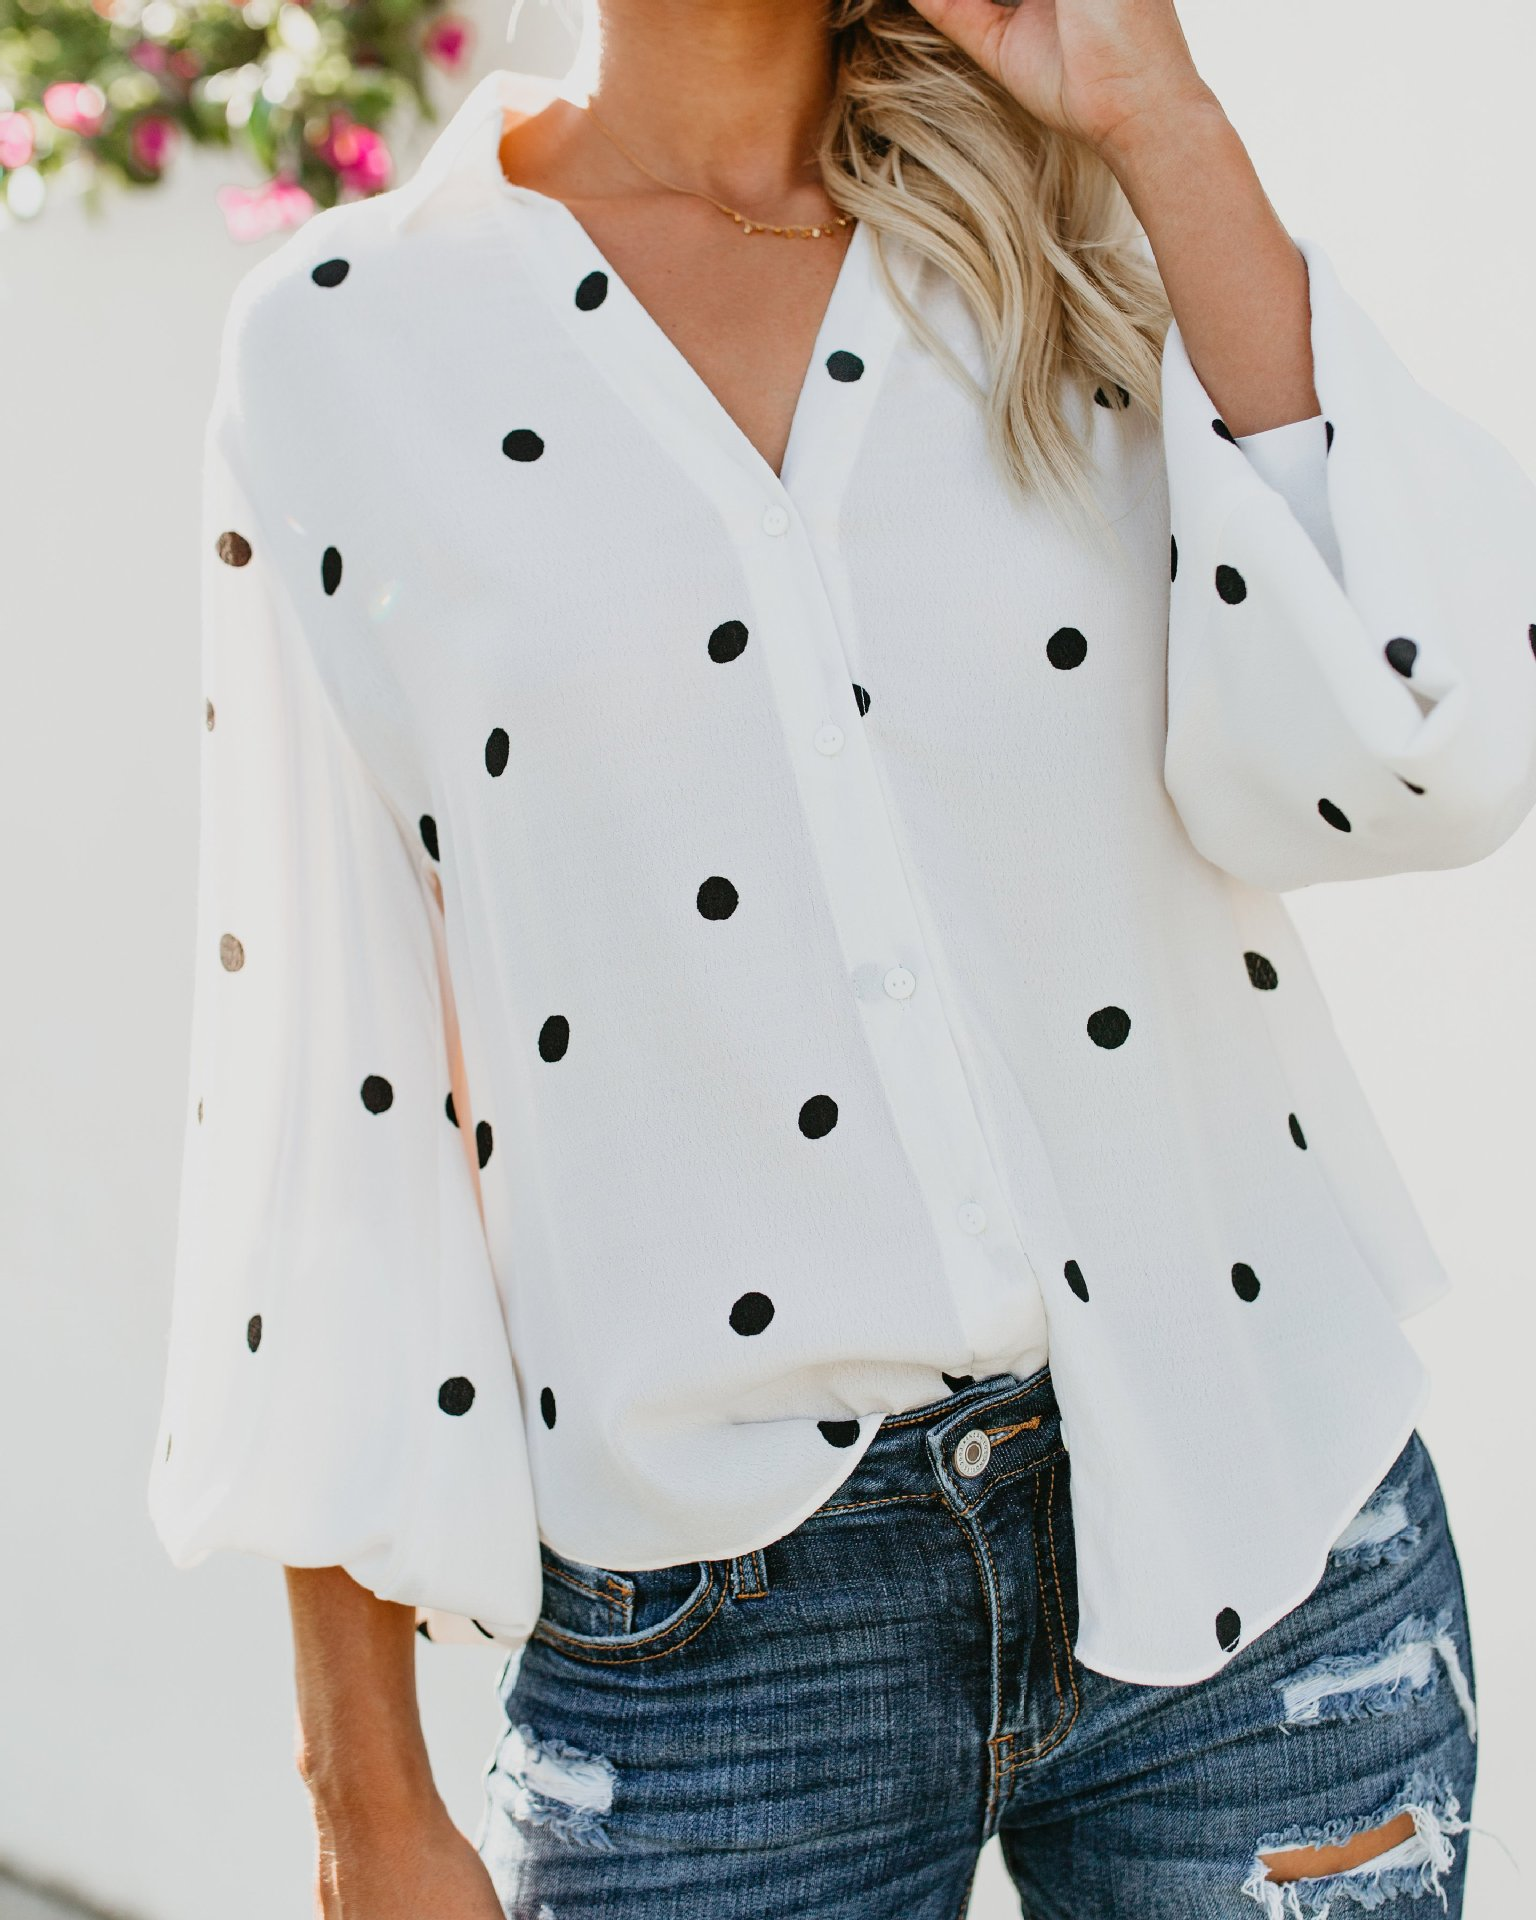 women blouse fashion 2020  female ladies clothing womens v-neck polka dot long sleeve top sexy shirt top 90s